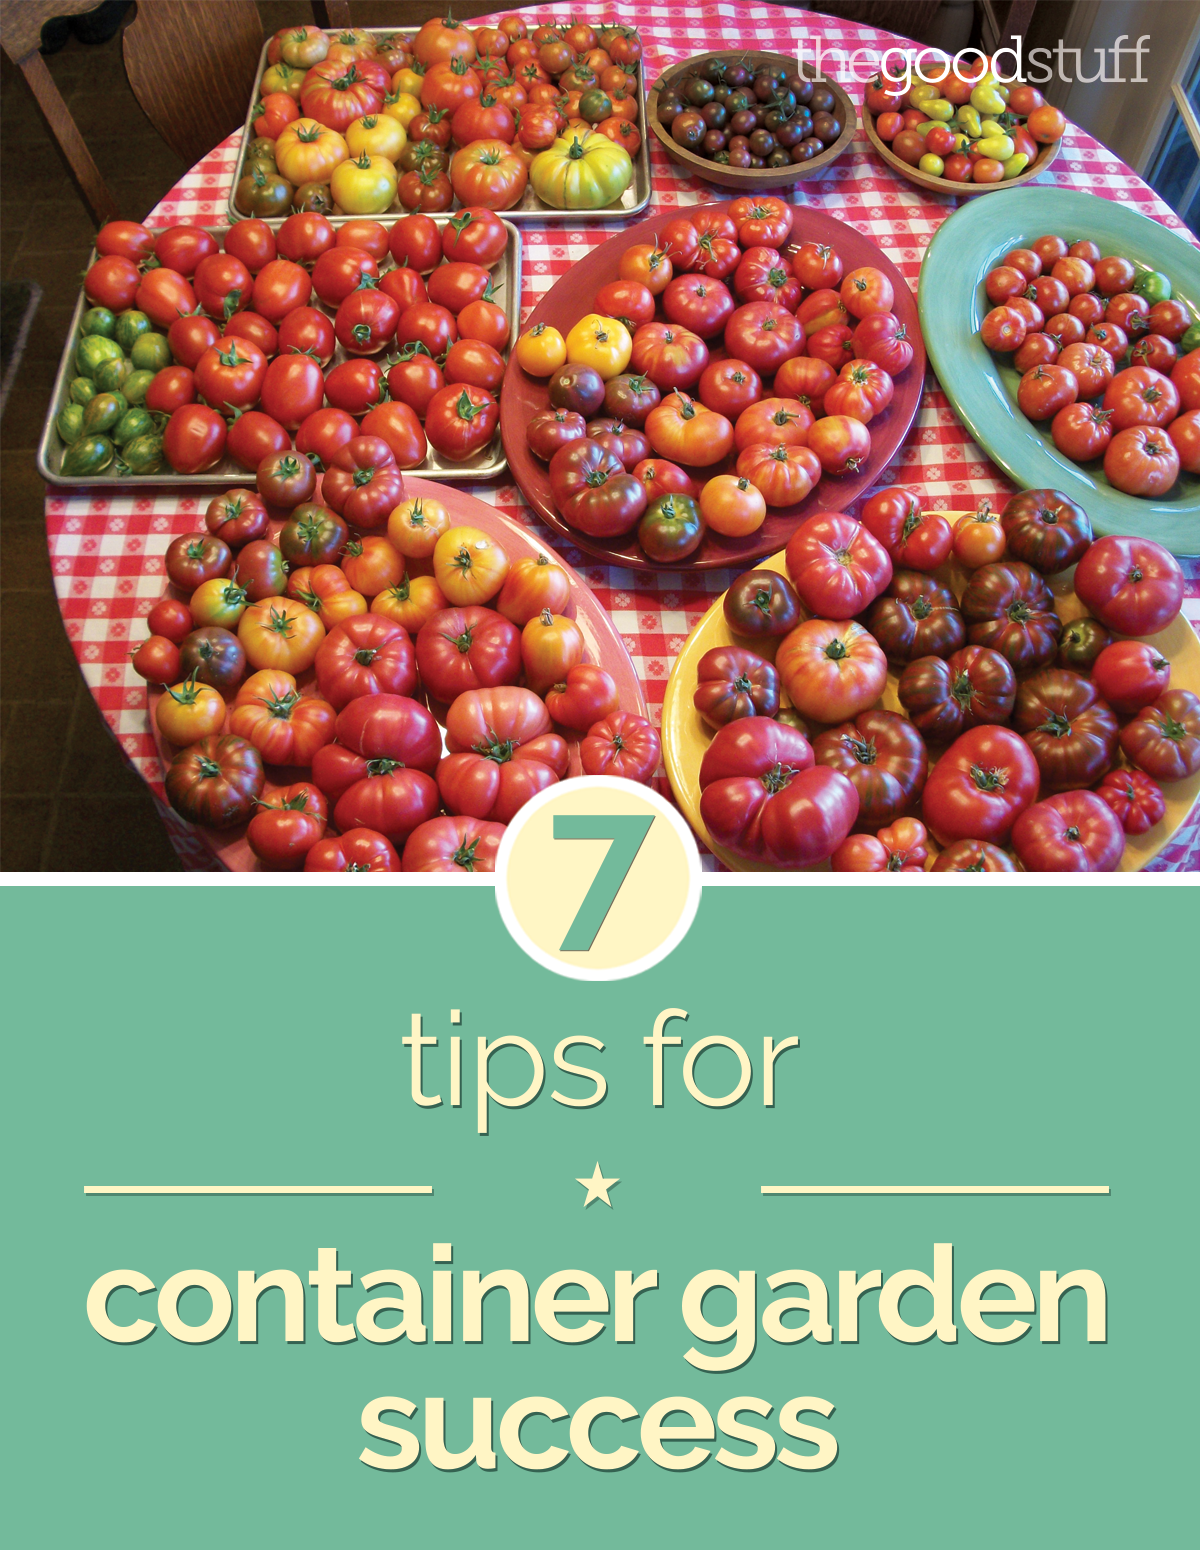 7 Tips for Container Garden Success | thegoodstuff